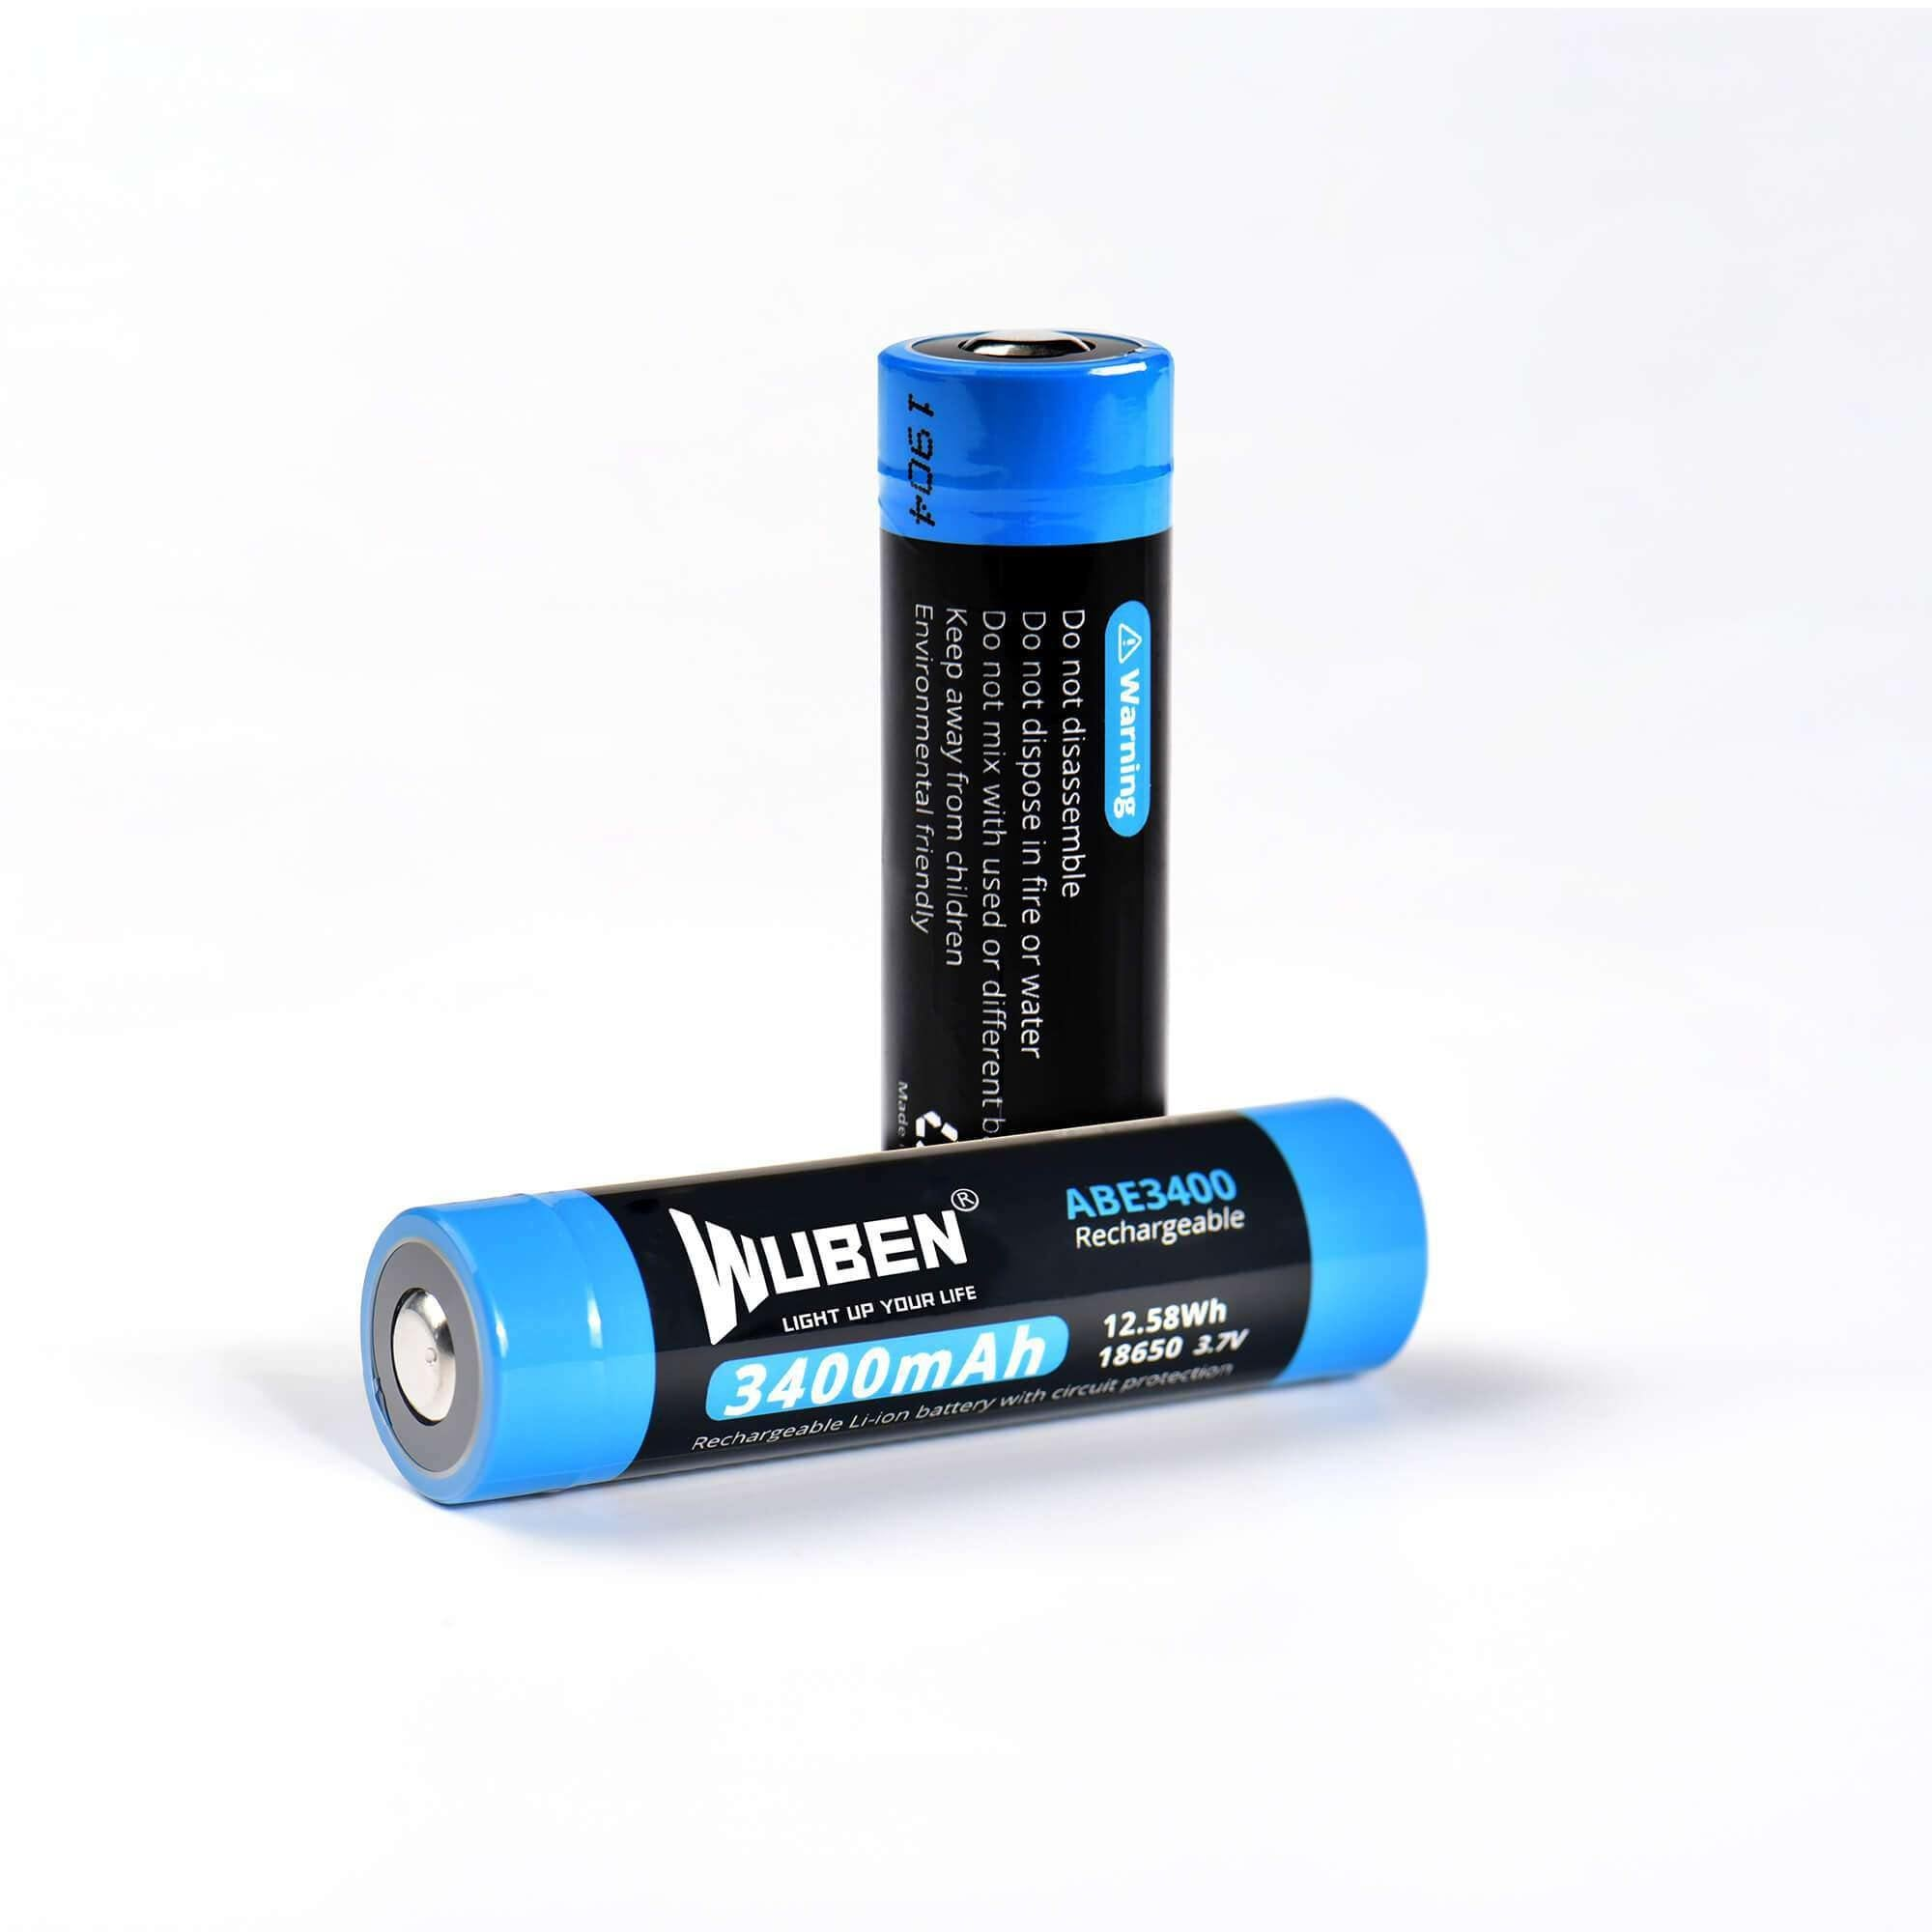 ABE3400 18650 3400mAh rechargeable Protected lithium battery